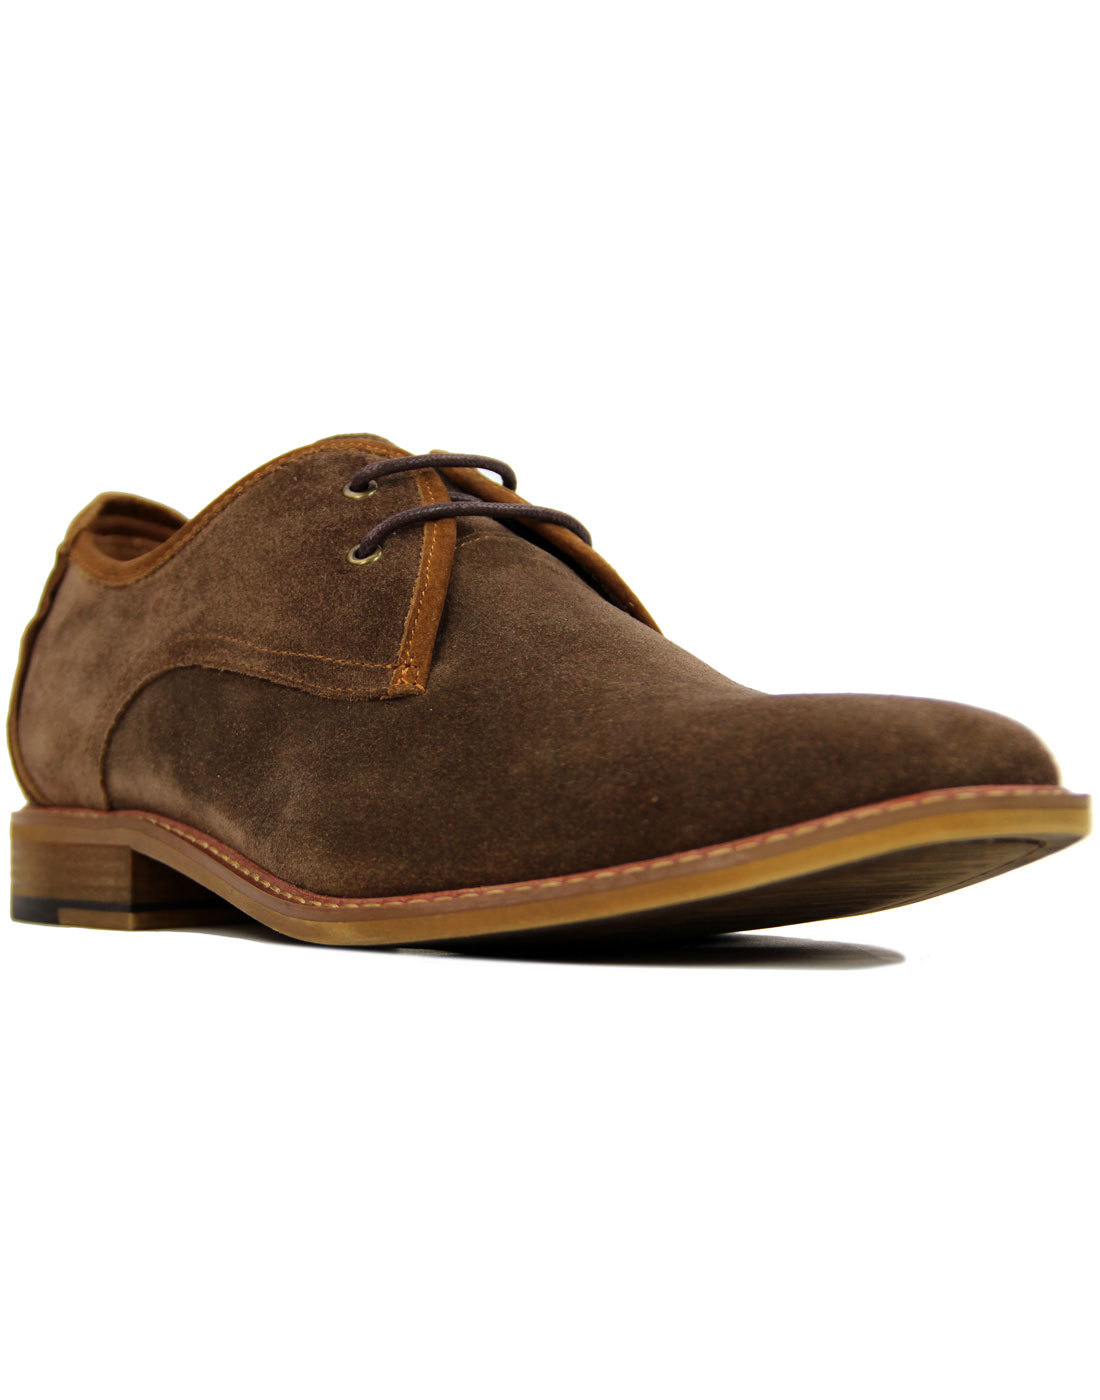 Logan SERGIO DULETTI Mod Piped Suede Derby Shoes